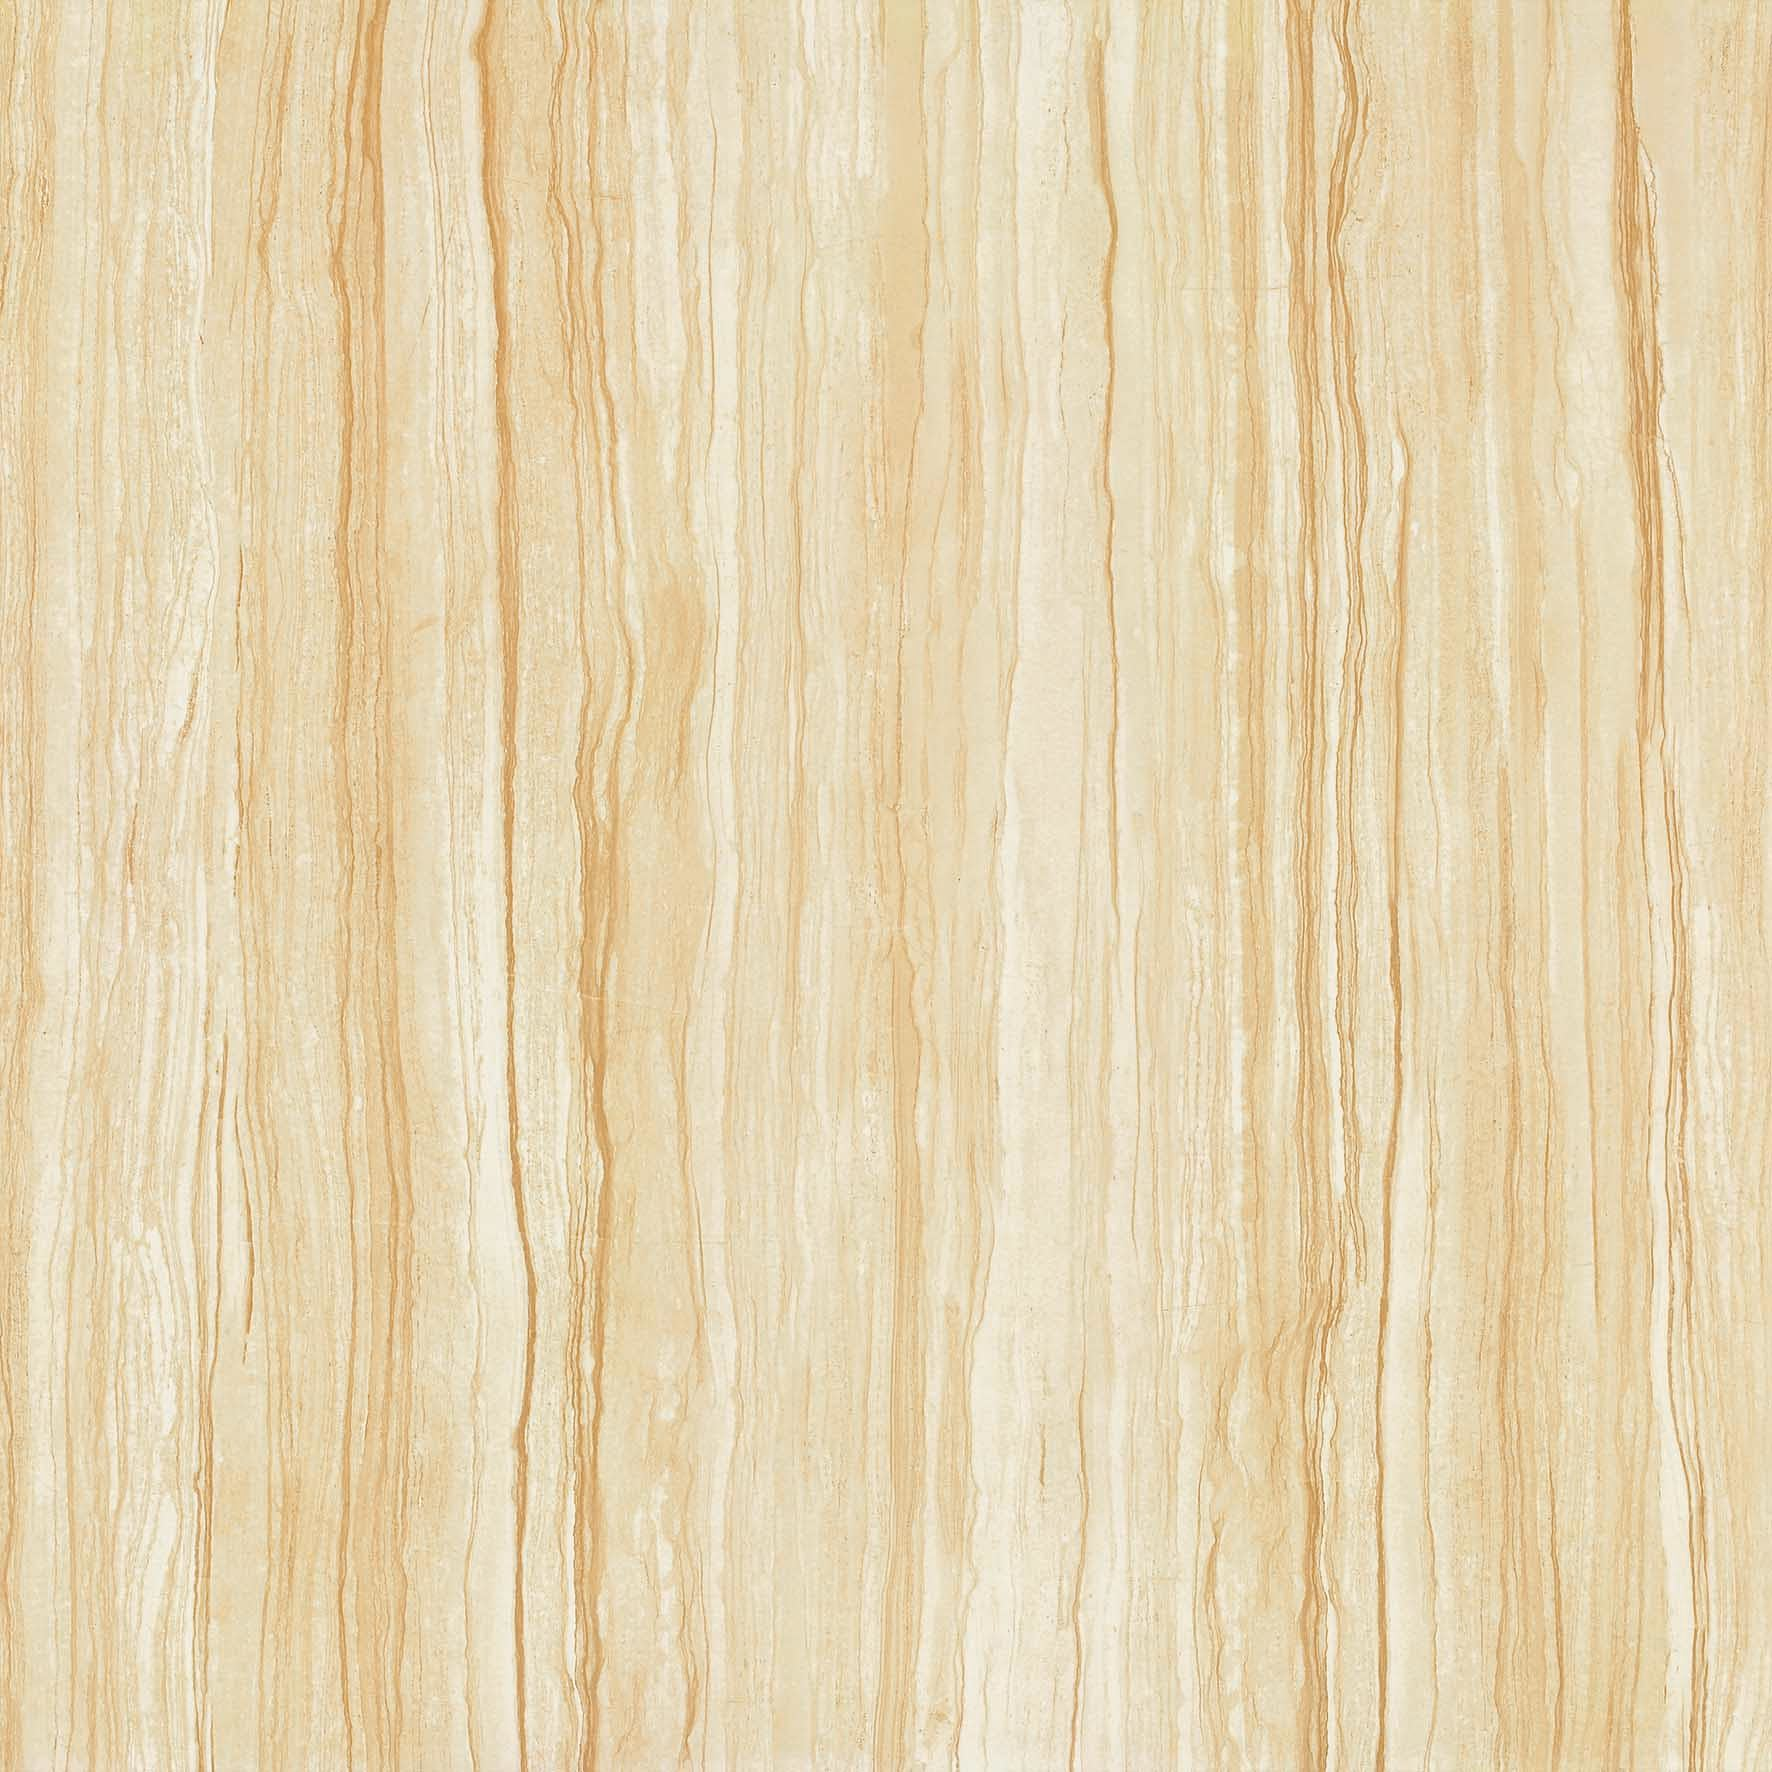 China super smooth glazed porcelain tileceramic tilefloor tile super smooth glazed porcelain tileceramic tilefloor tileflooringbuilding material doublecrazyfo Image collections